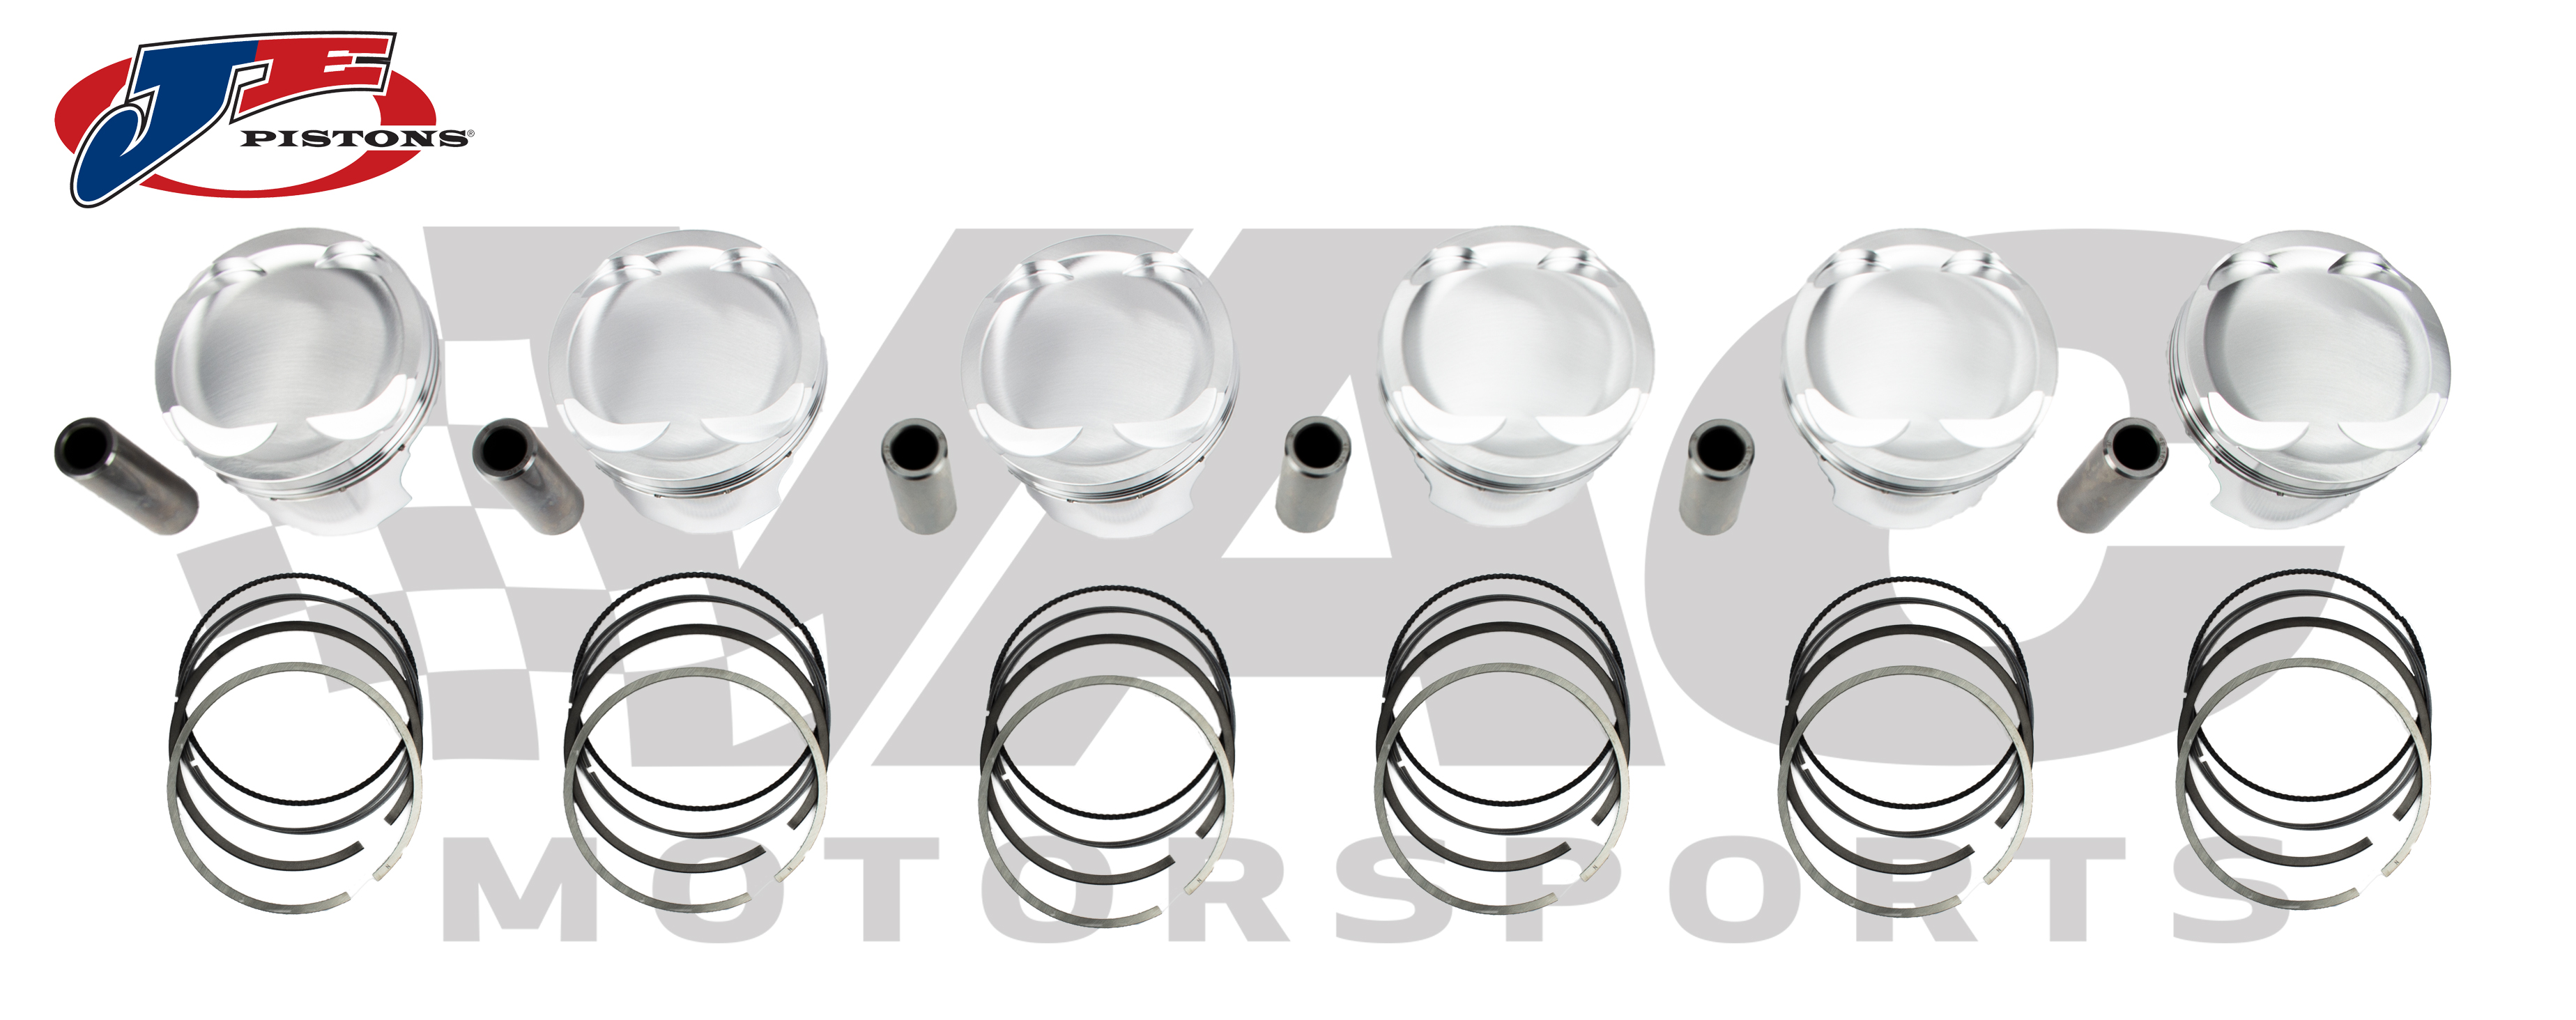 JE Pistons Forged Piston Set (BMW M20B25 Euro) THUMBNAIL